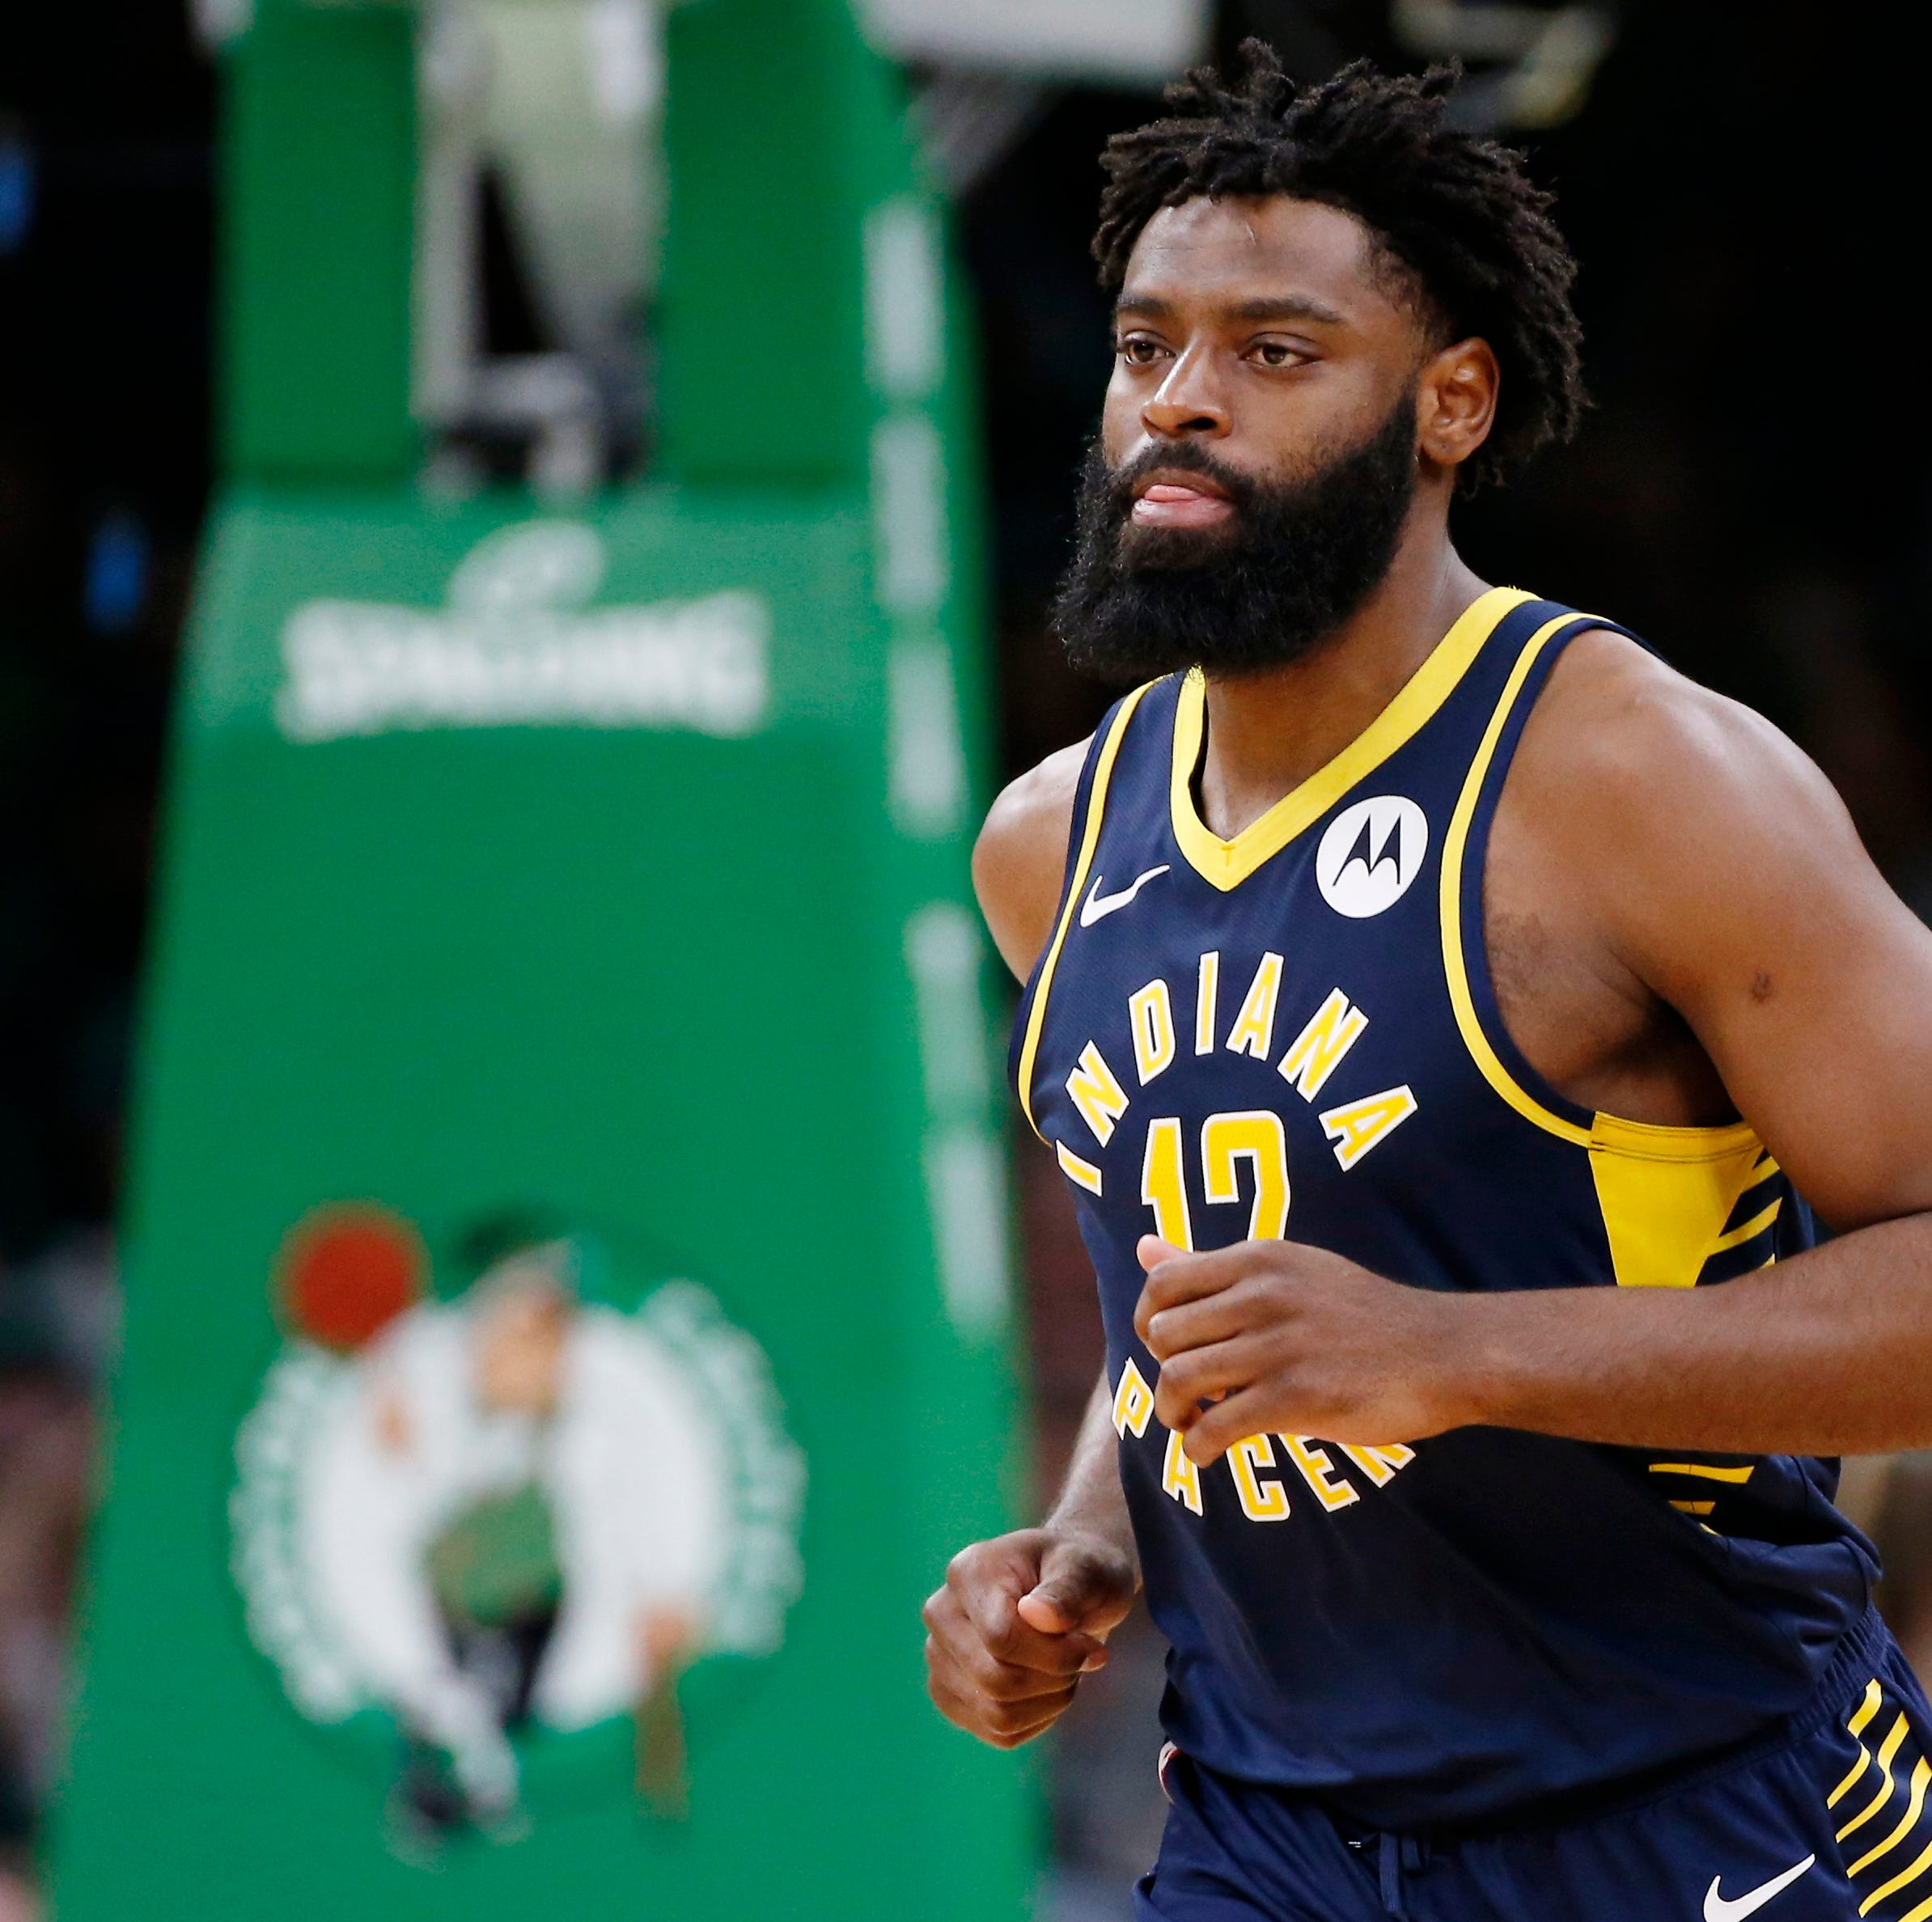 Indiana Pacers guard Tyreke Evans dismissed from NBA for two years for drug violation